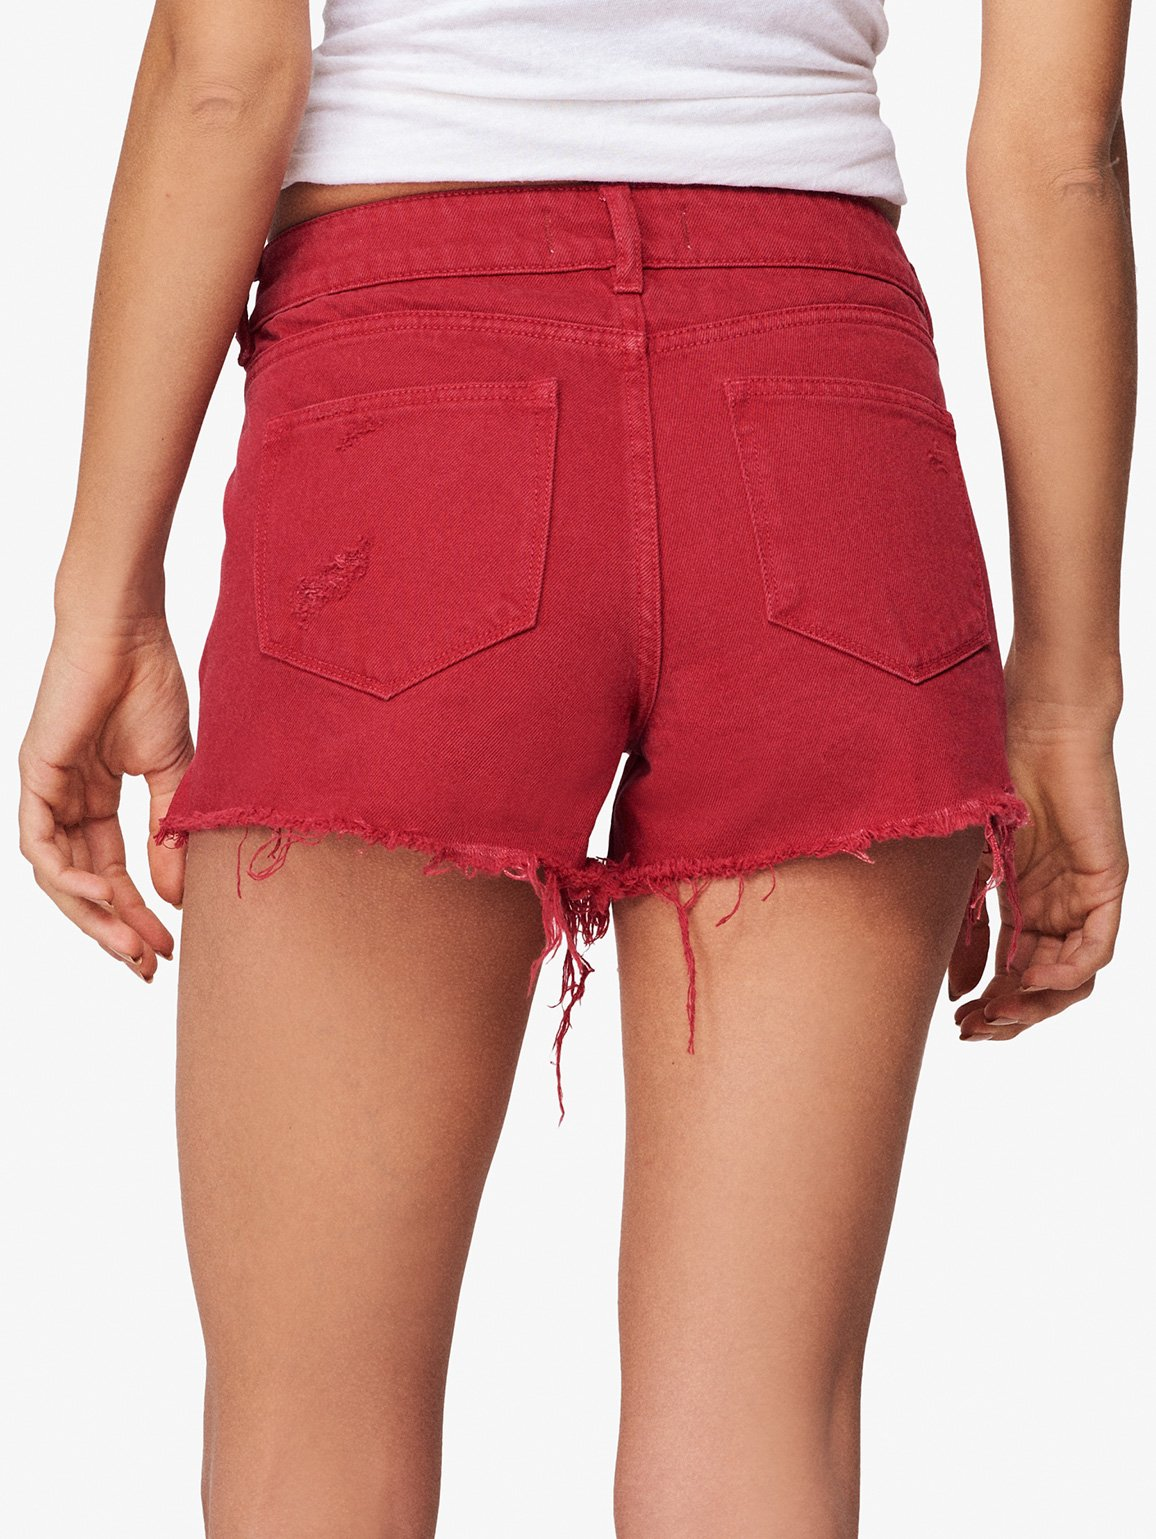 Renee Low Rise Short | Cherry Bomb DL 1961 Denim